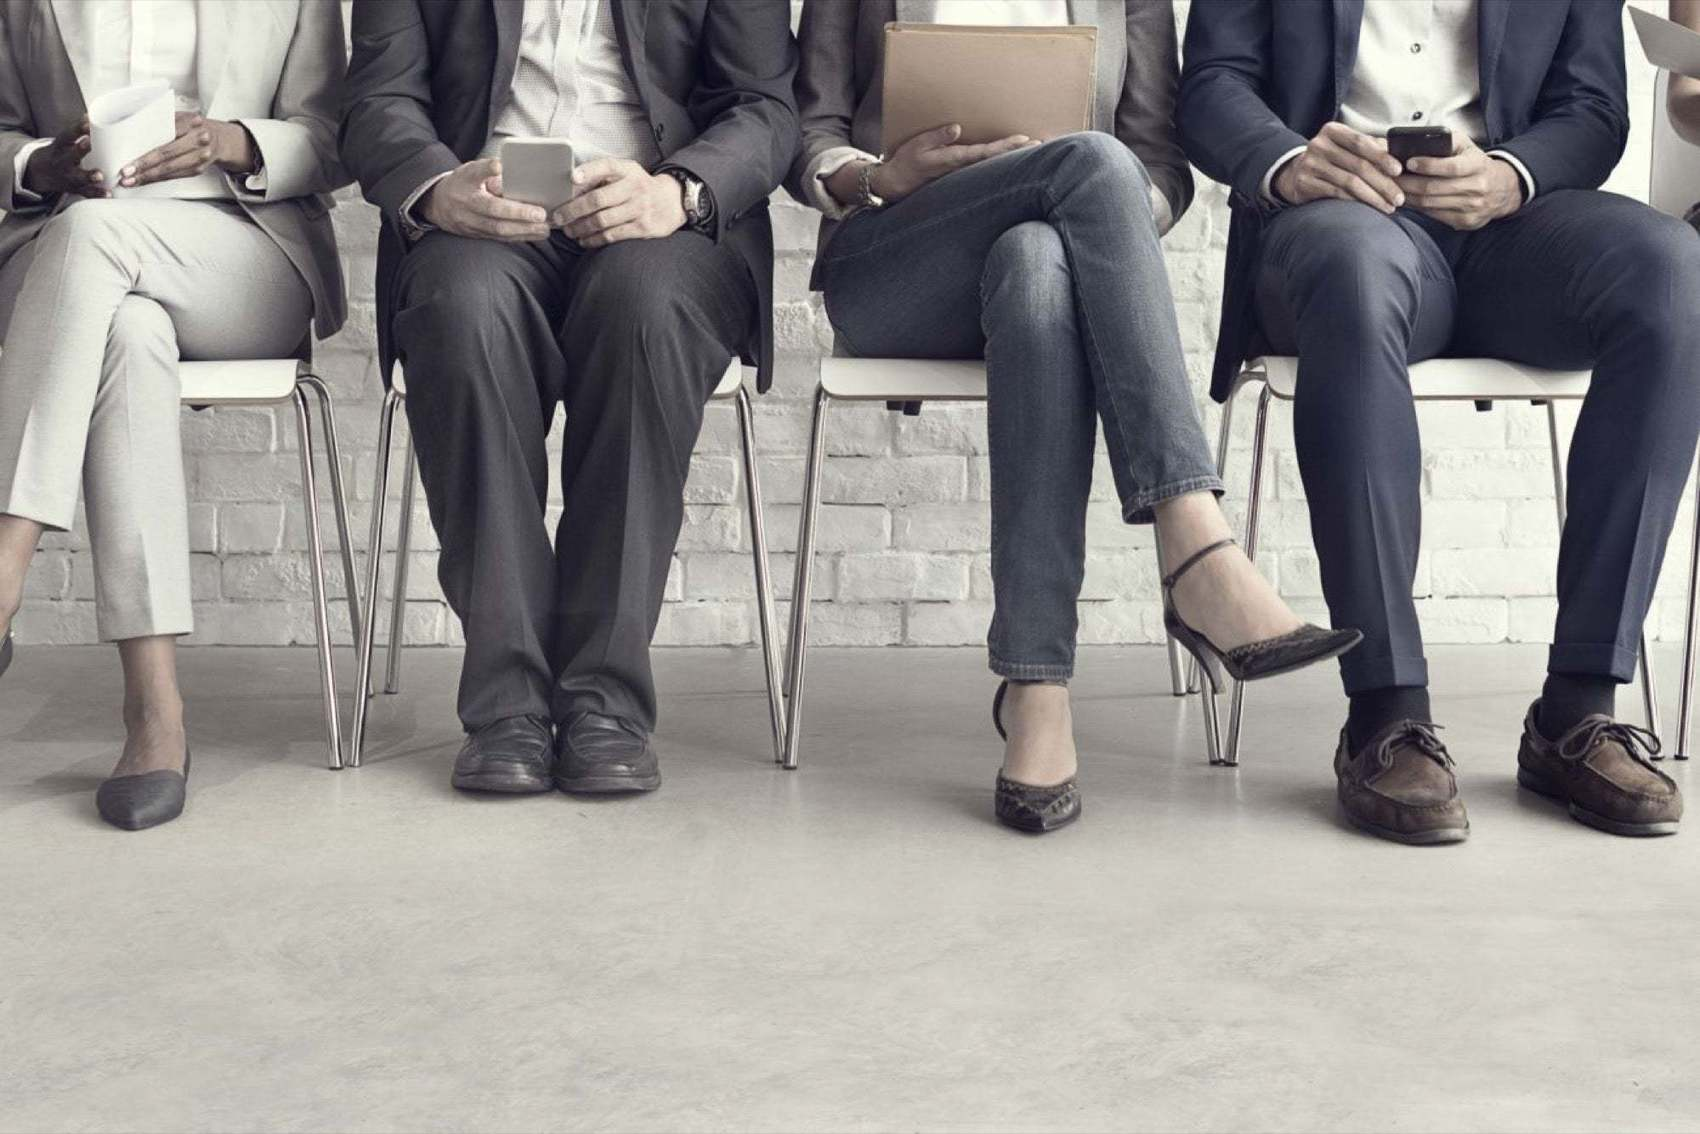 Corporates Today Are Recognizing the Benefits of a Multi-Talented Workforce